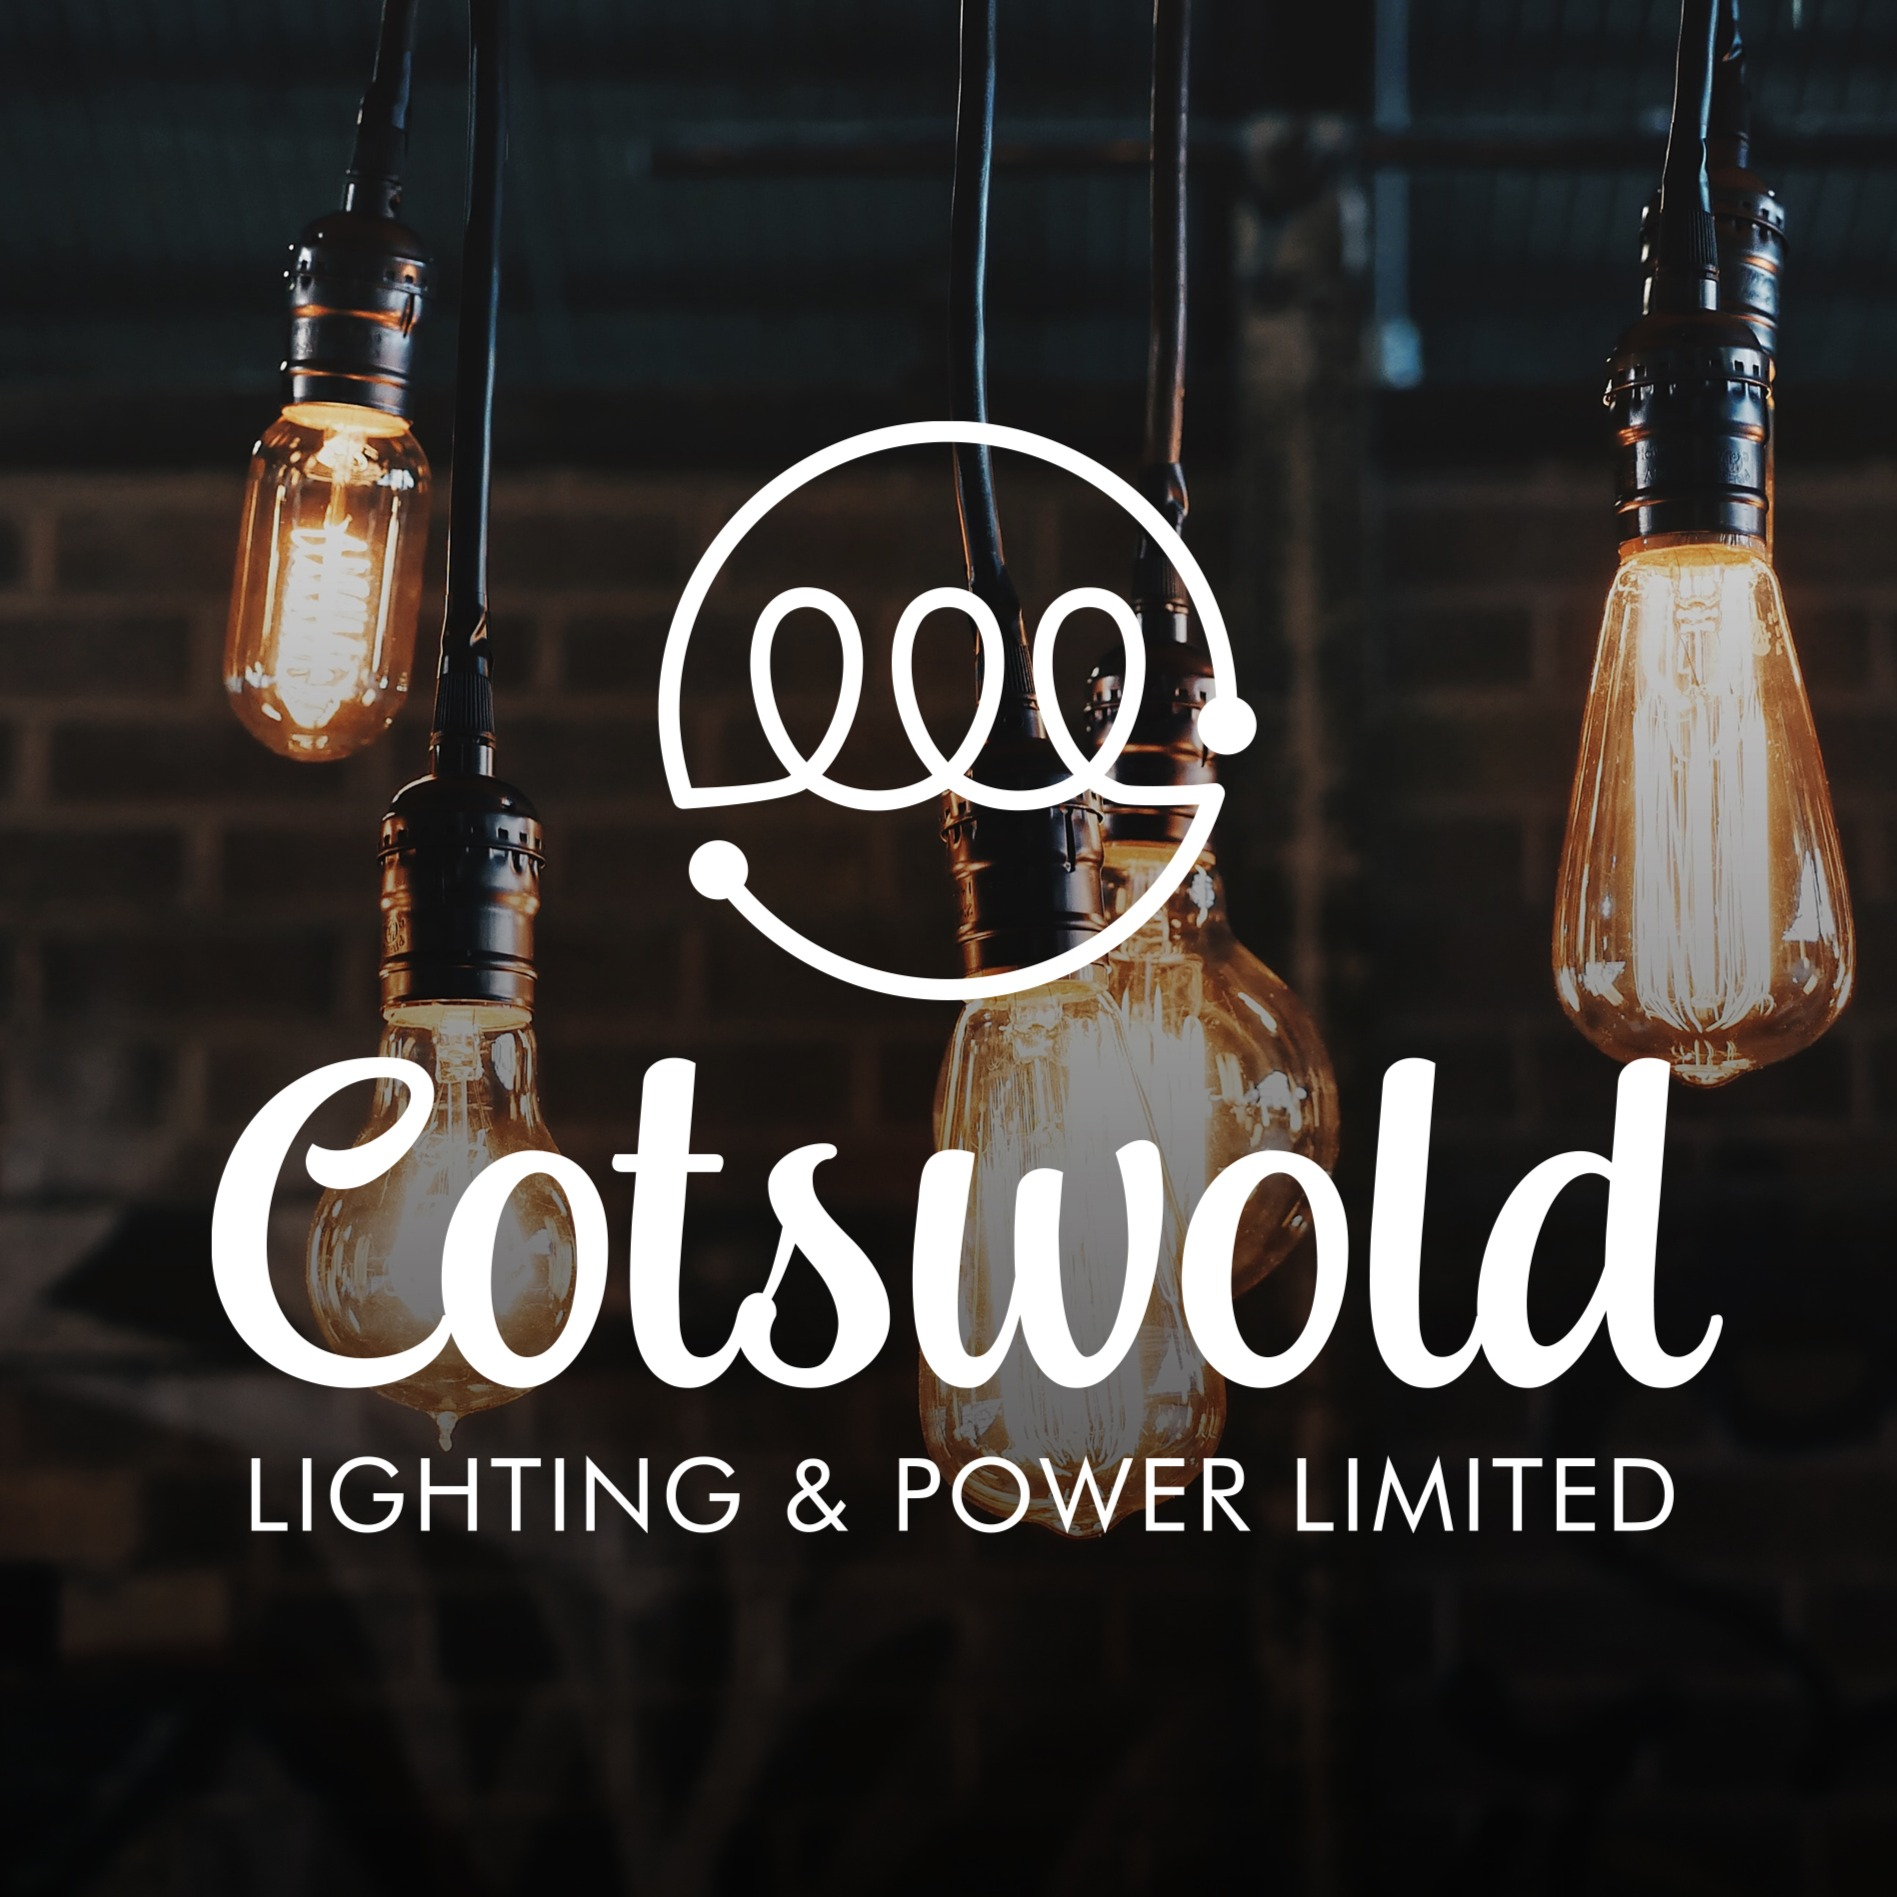 Cotswold Lighting & Power